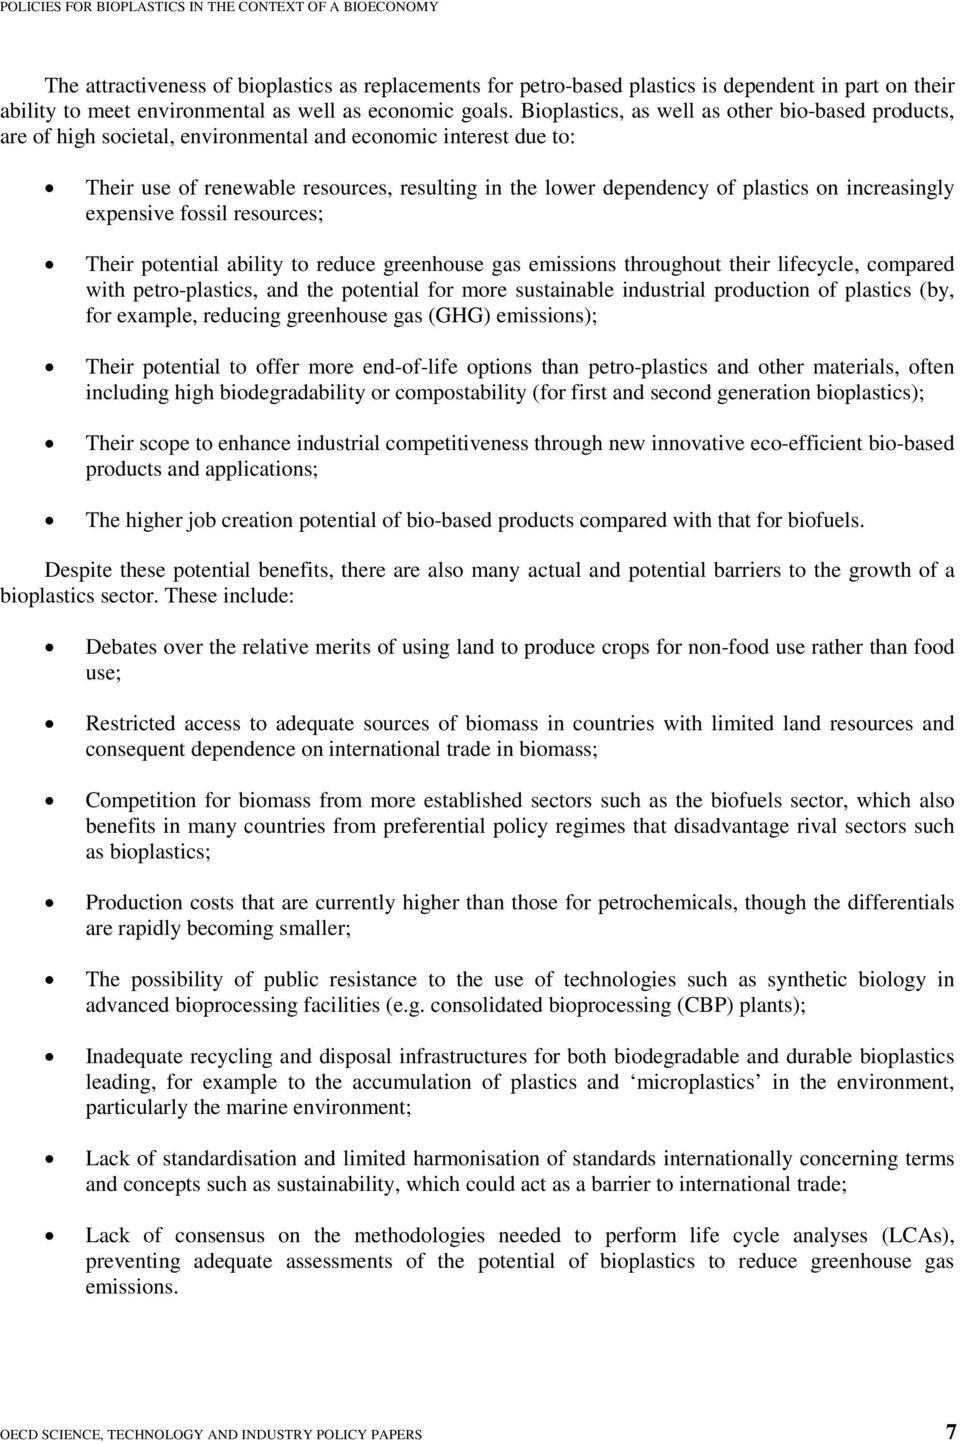 Policies for Bioplastics in the Context of a Bioeconomy - PDF